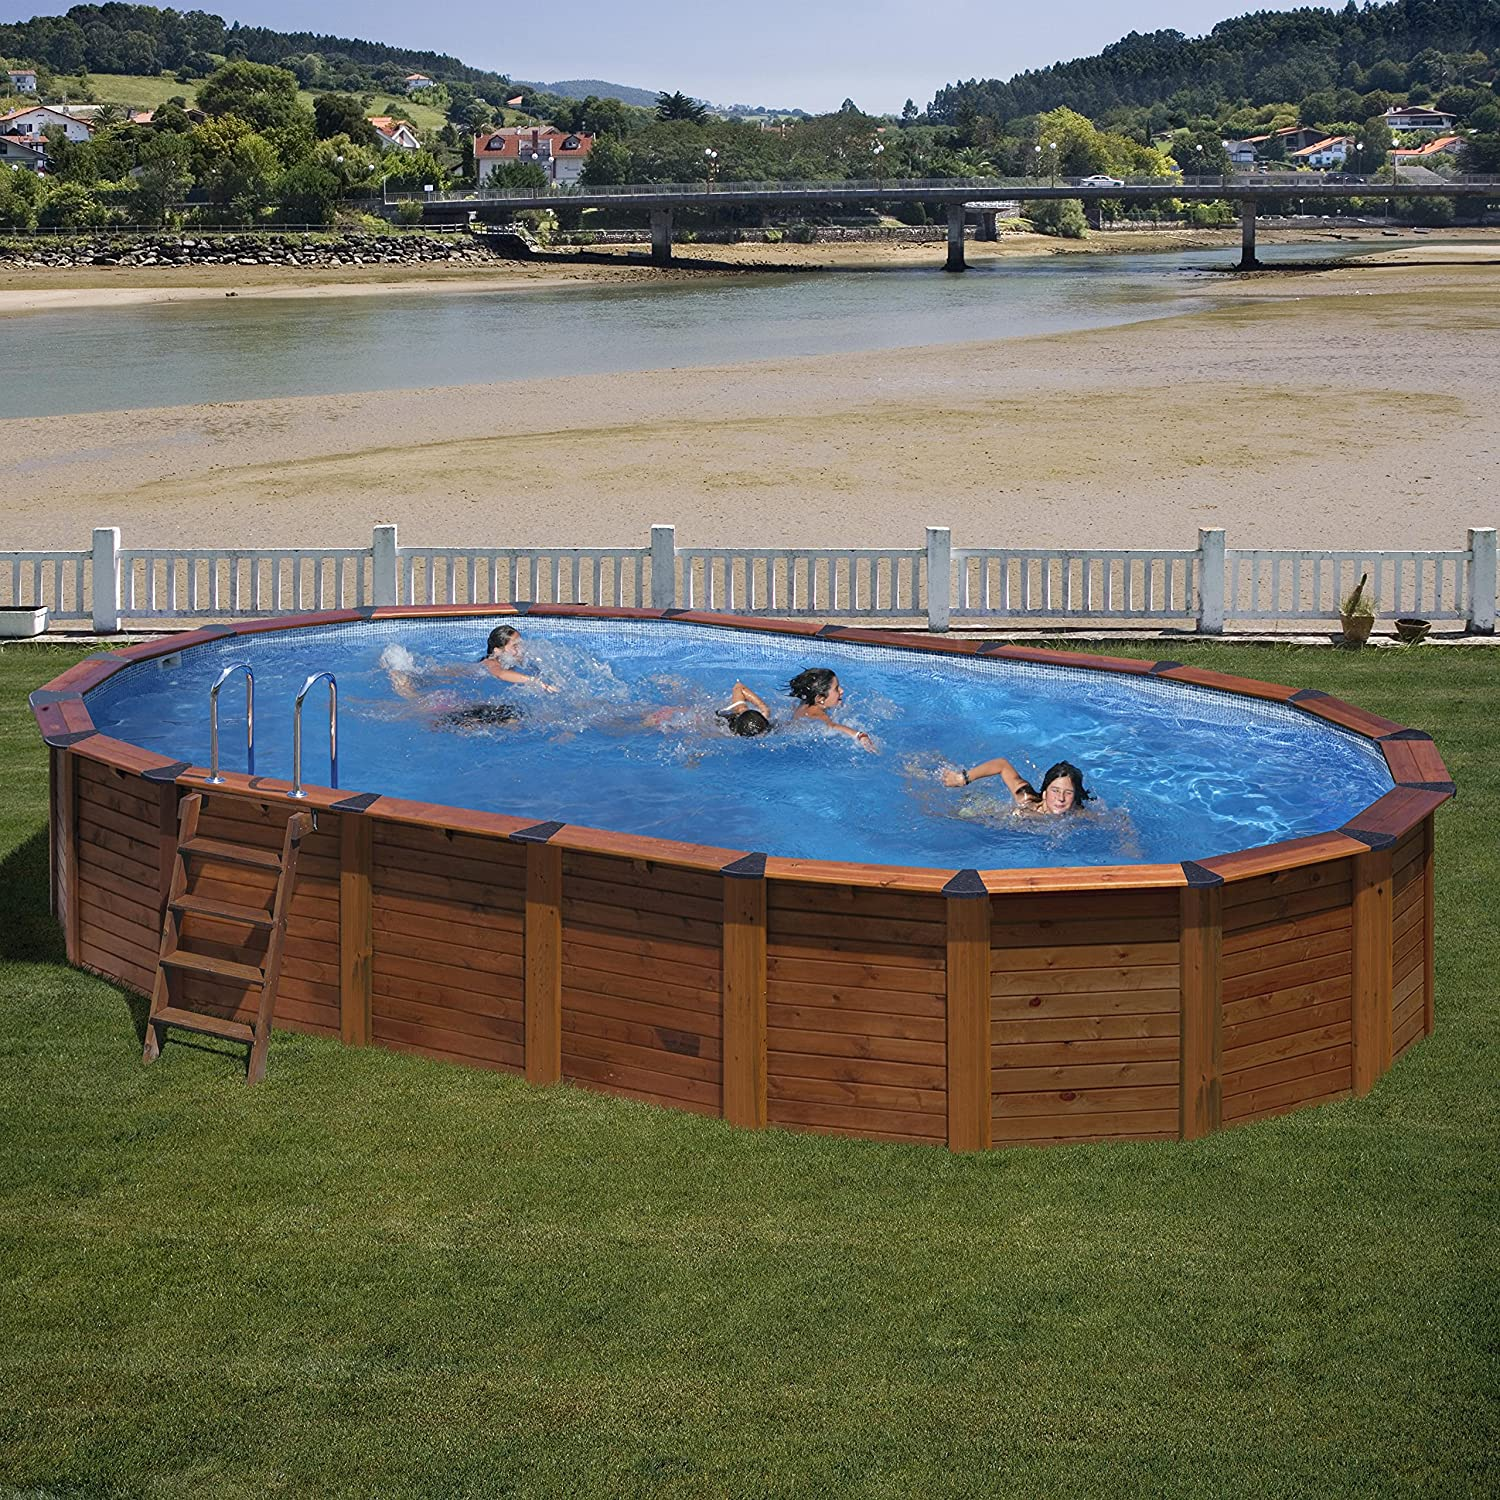 gre nature pool hawaii stahlwandpool 6,40×3,90×1,32m online kaufen